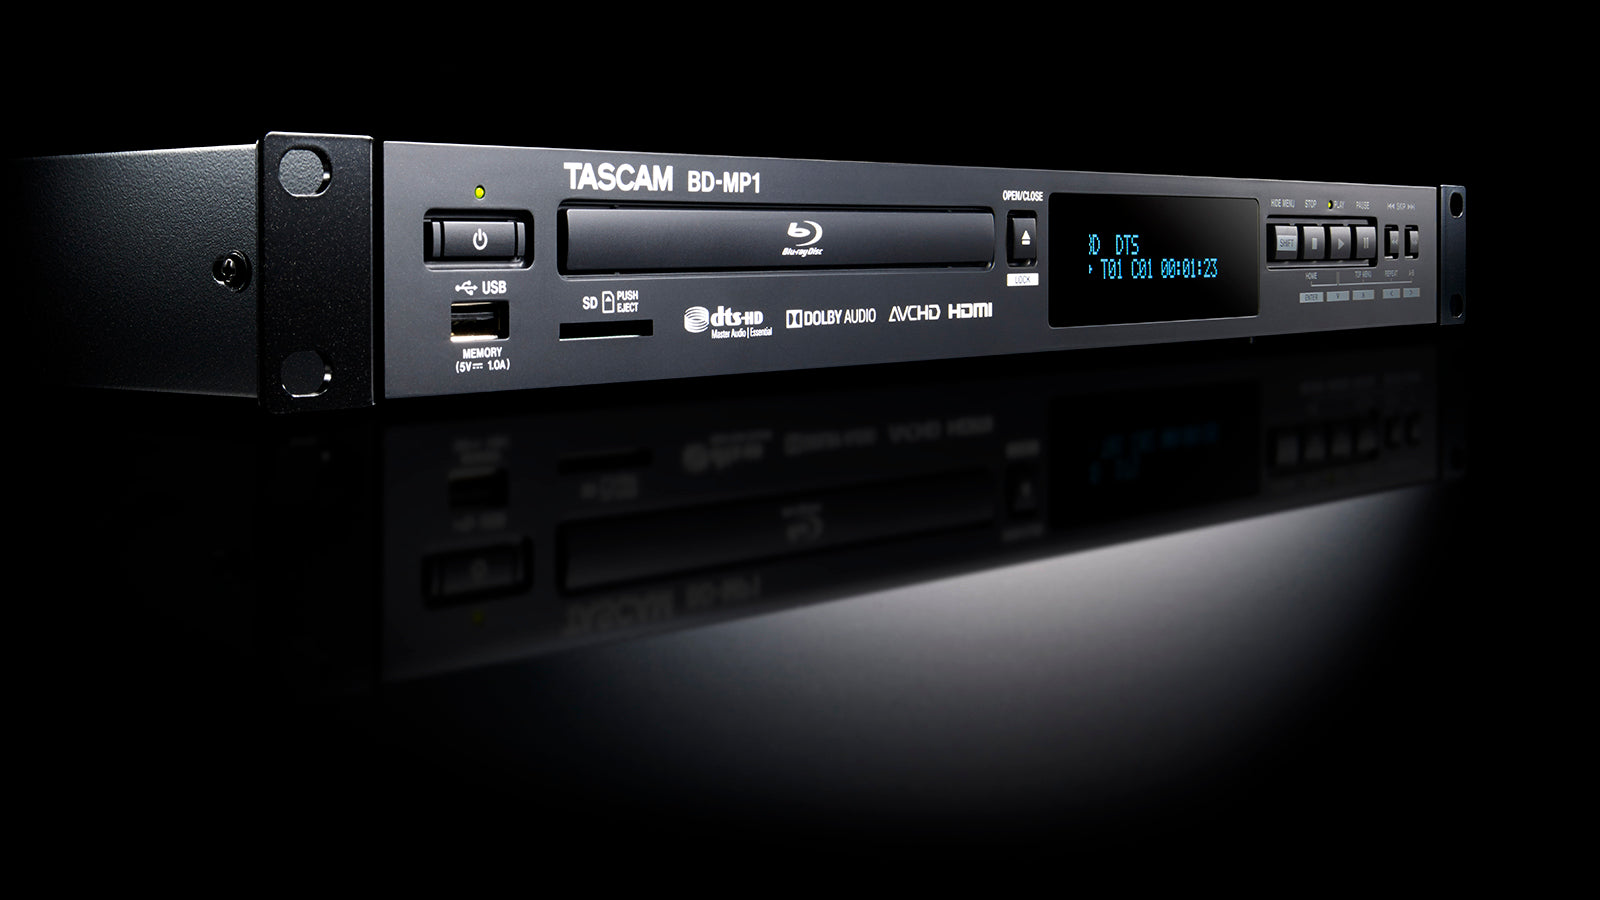 Tascam BD-MP1 - Professional-grade Blu-ray player - 305broadcast